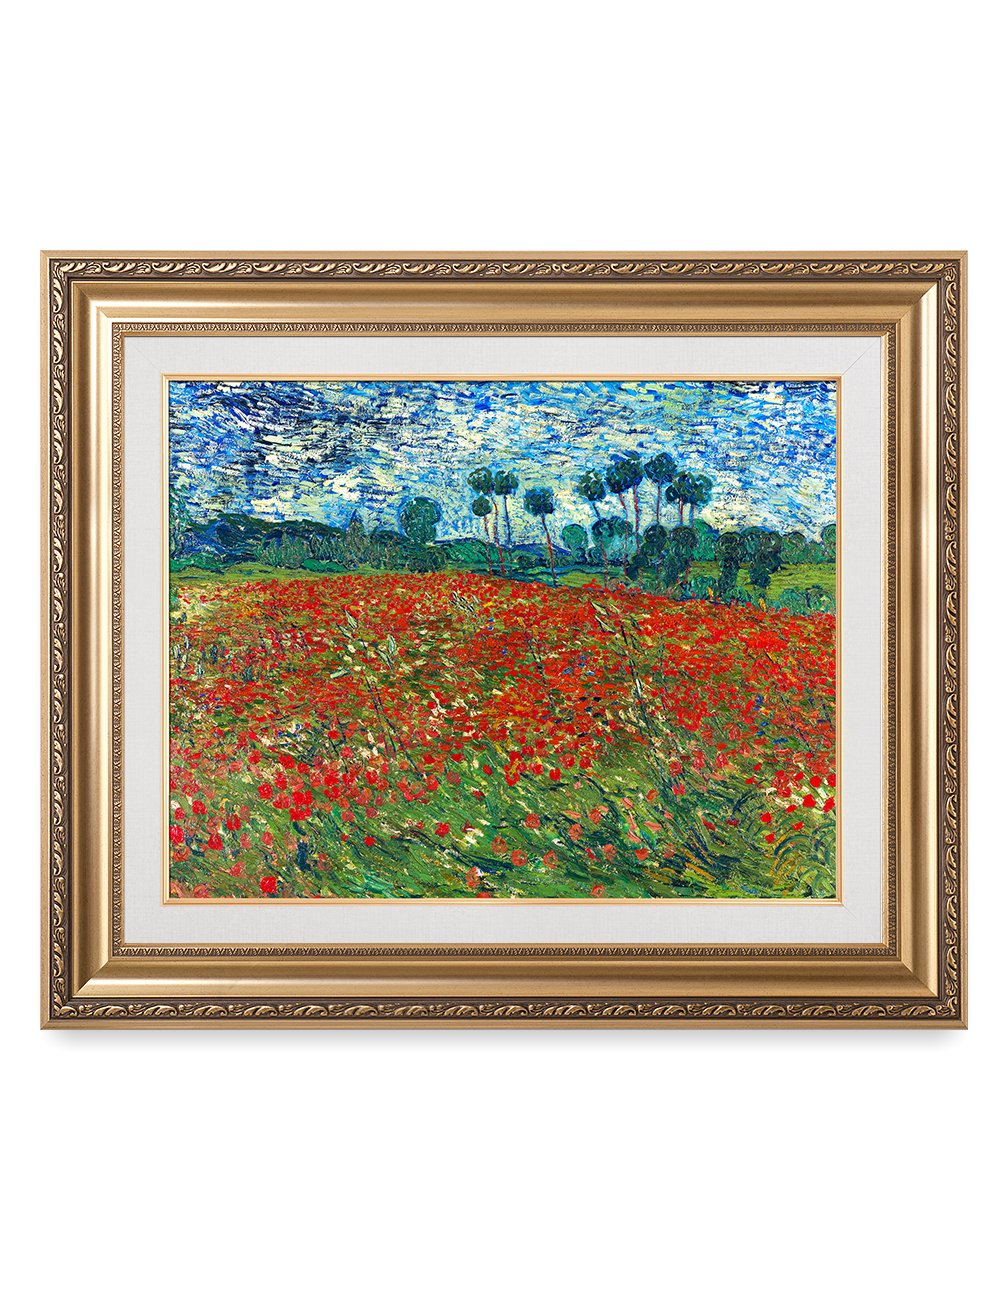 IPIC - Poppy Field Floral Vintage, Vincent Van Gogh Art Reproduction. Giclee Canvas Prints Wall Art with classic golden frame. Screen Size:30X16'',Framed Size: 36x30''